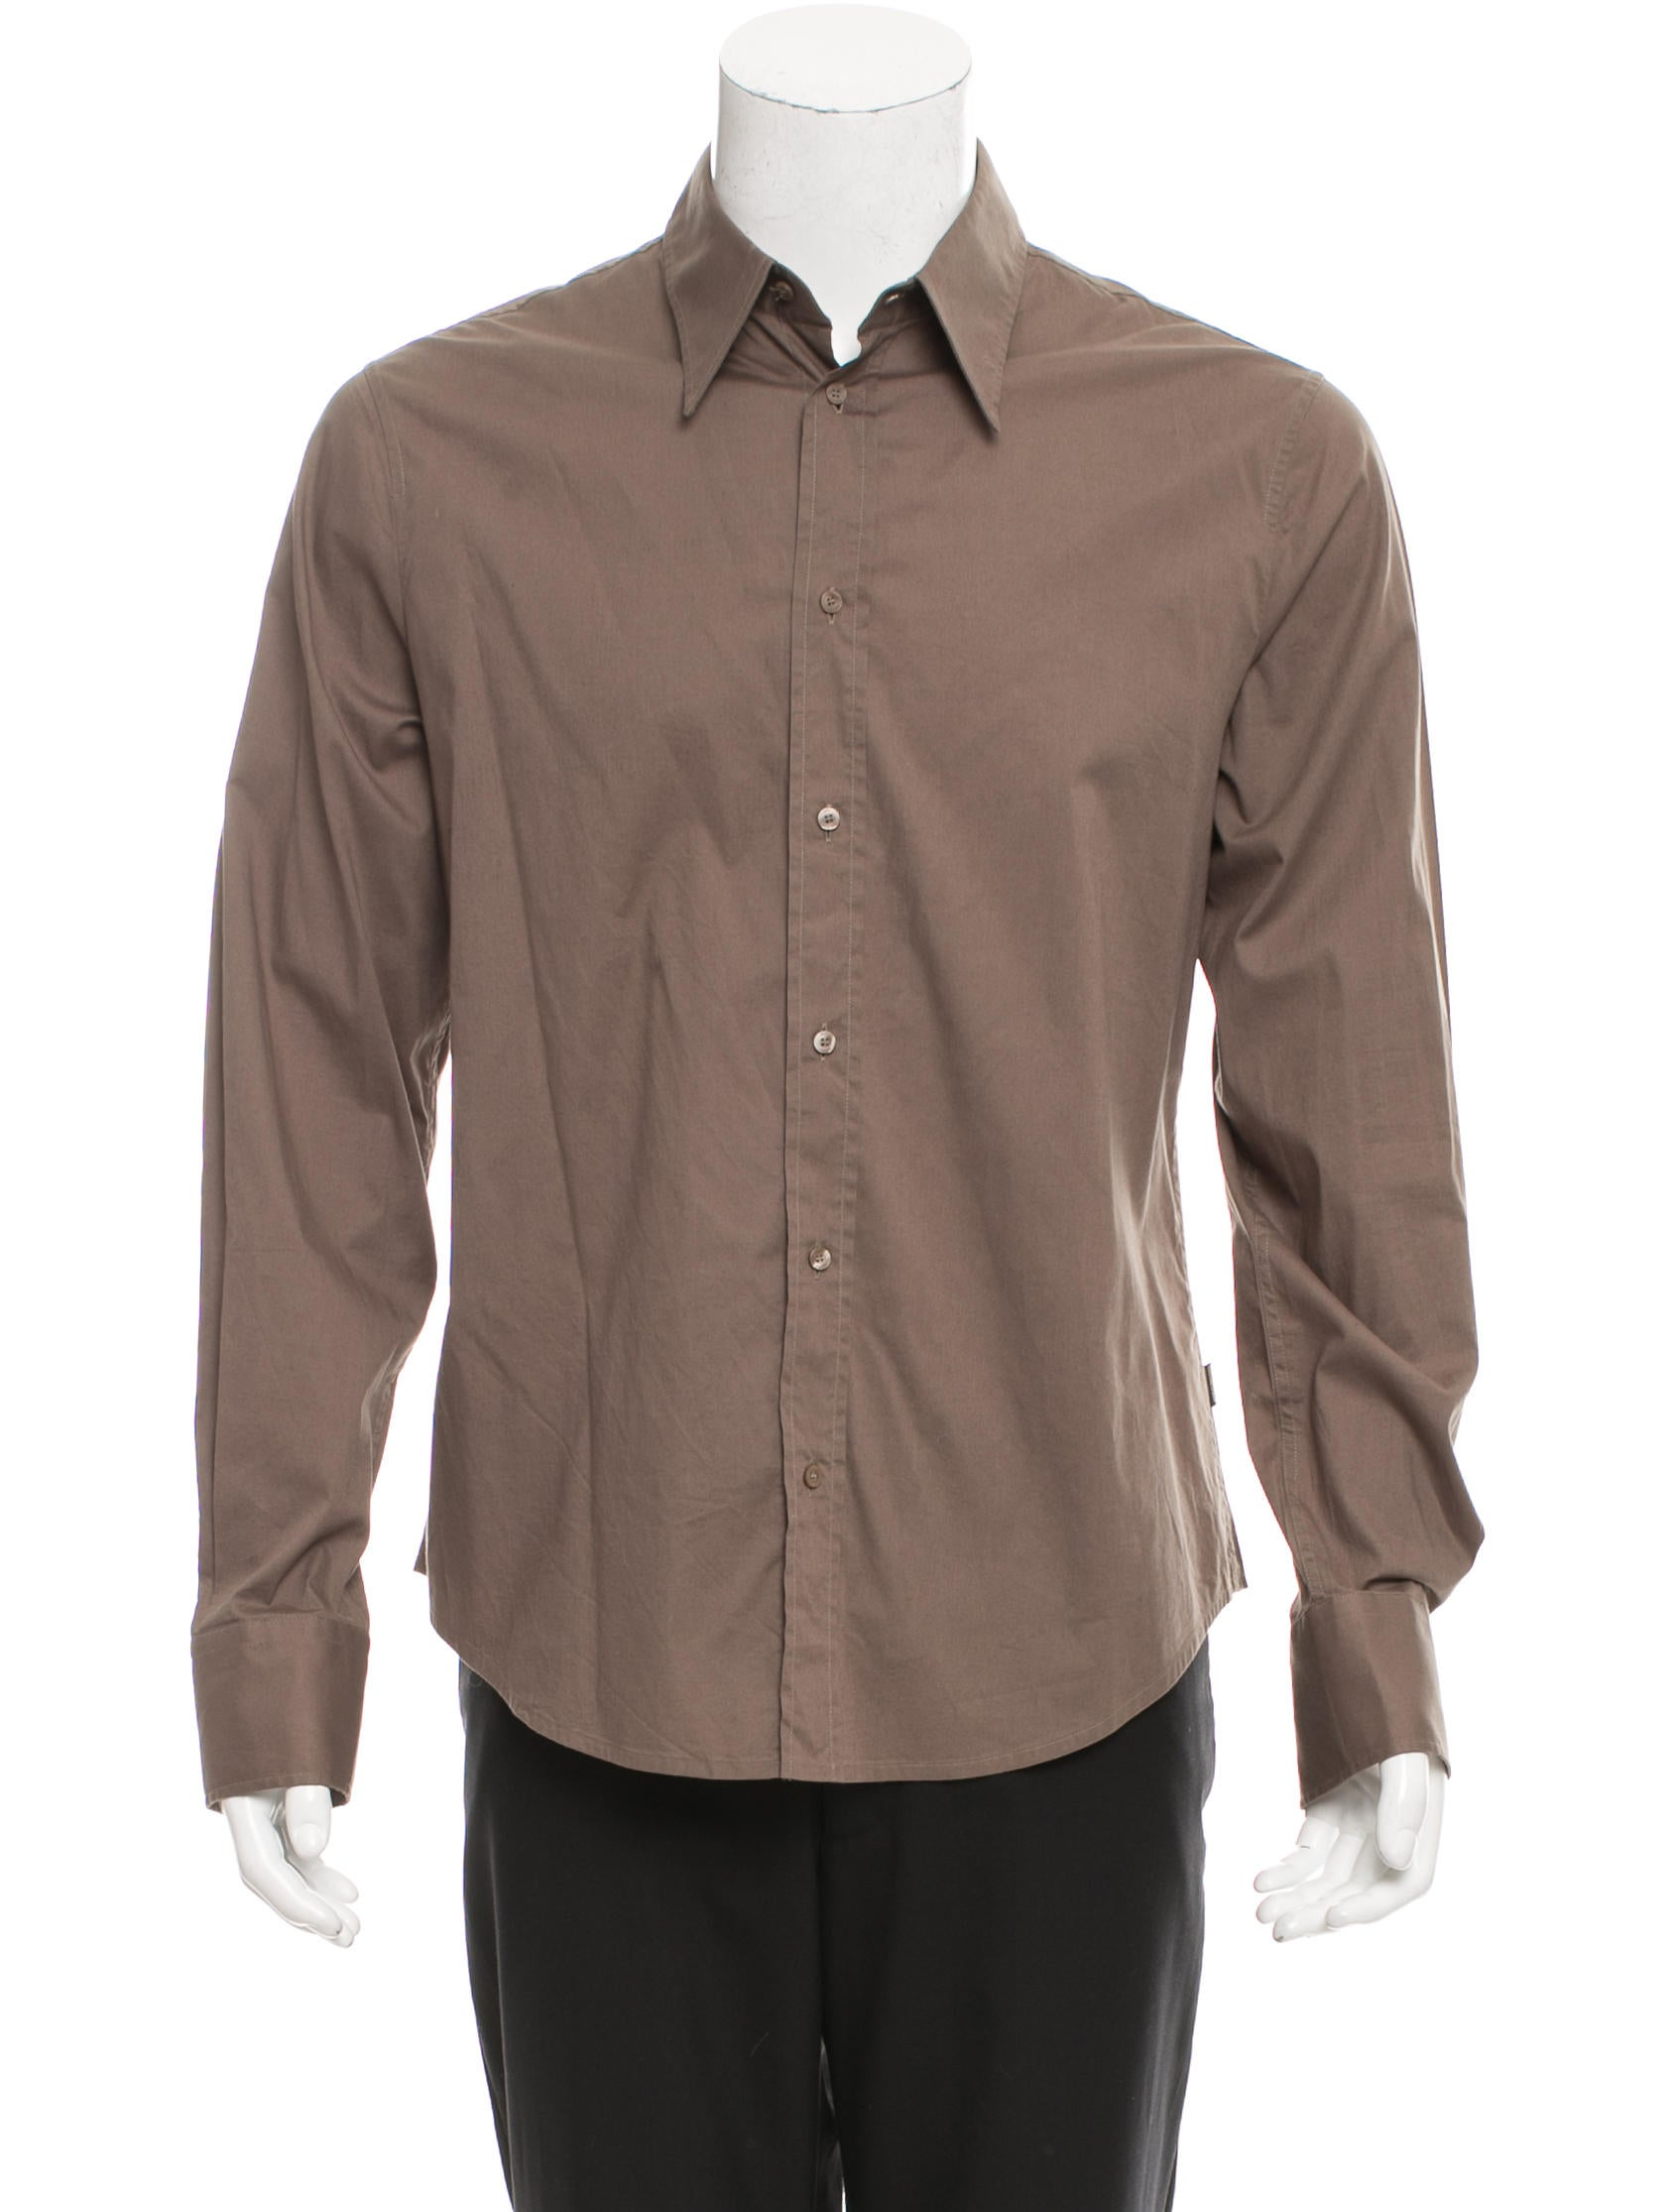 Just Cavalli Long Sleeve Button Up Shirt W Tags